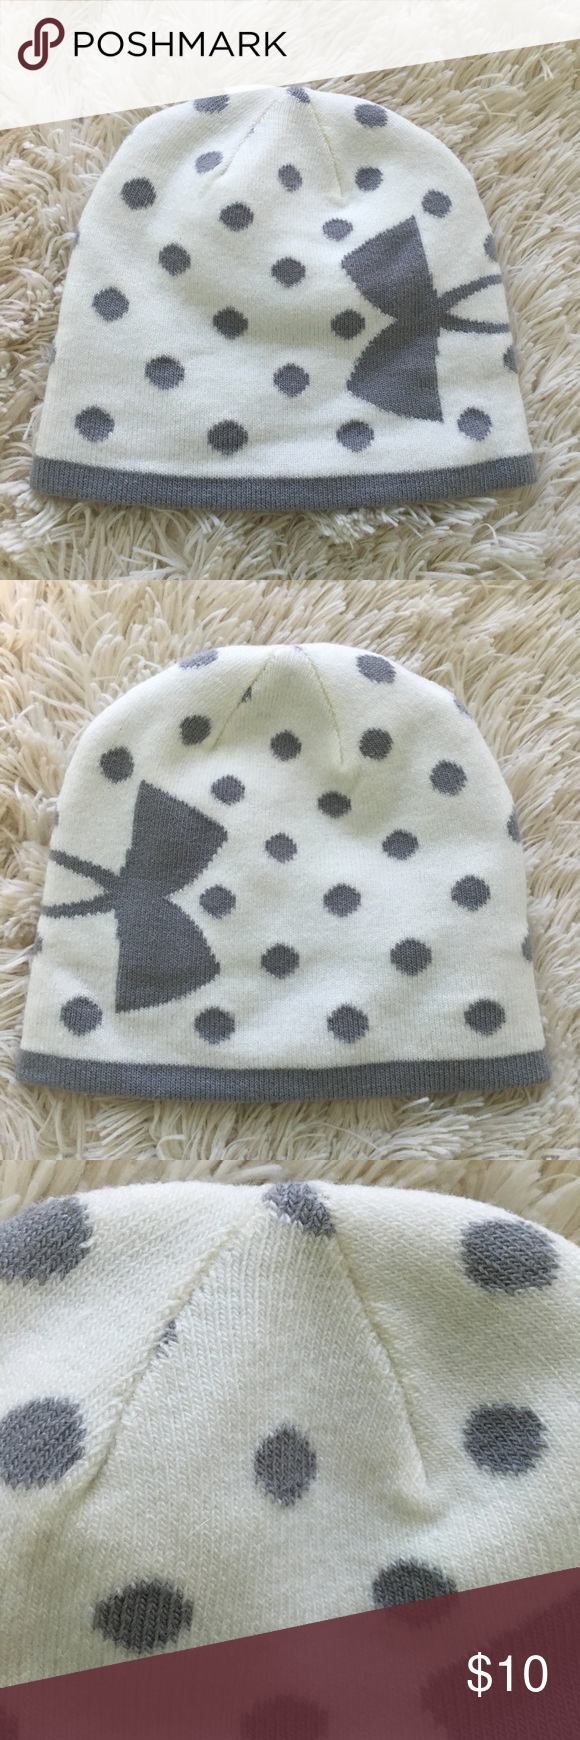 8fa18caee Youth (Girls) Under Armour Winter Hat. This is a Girls Under Armour ...